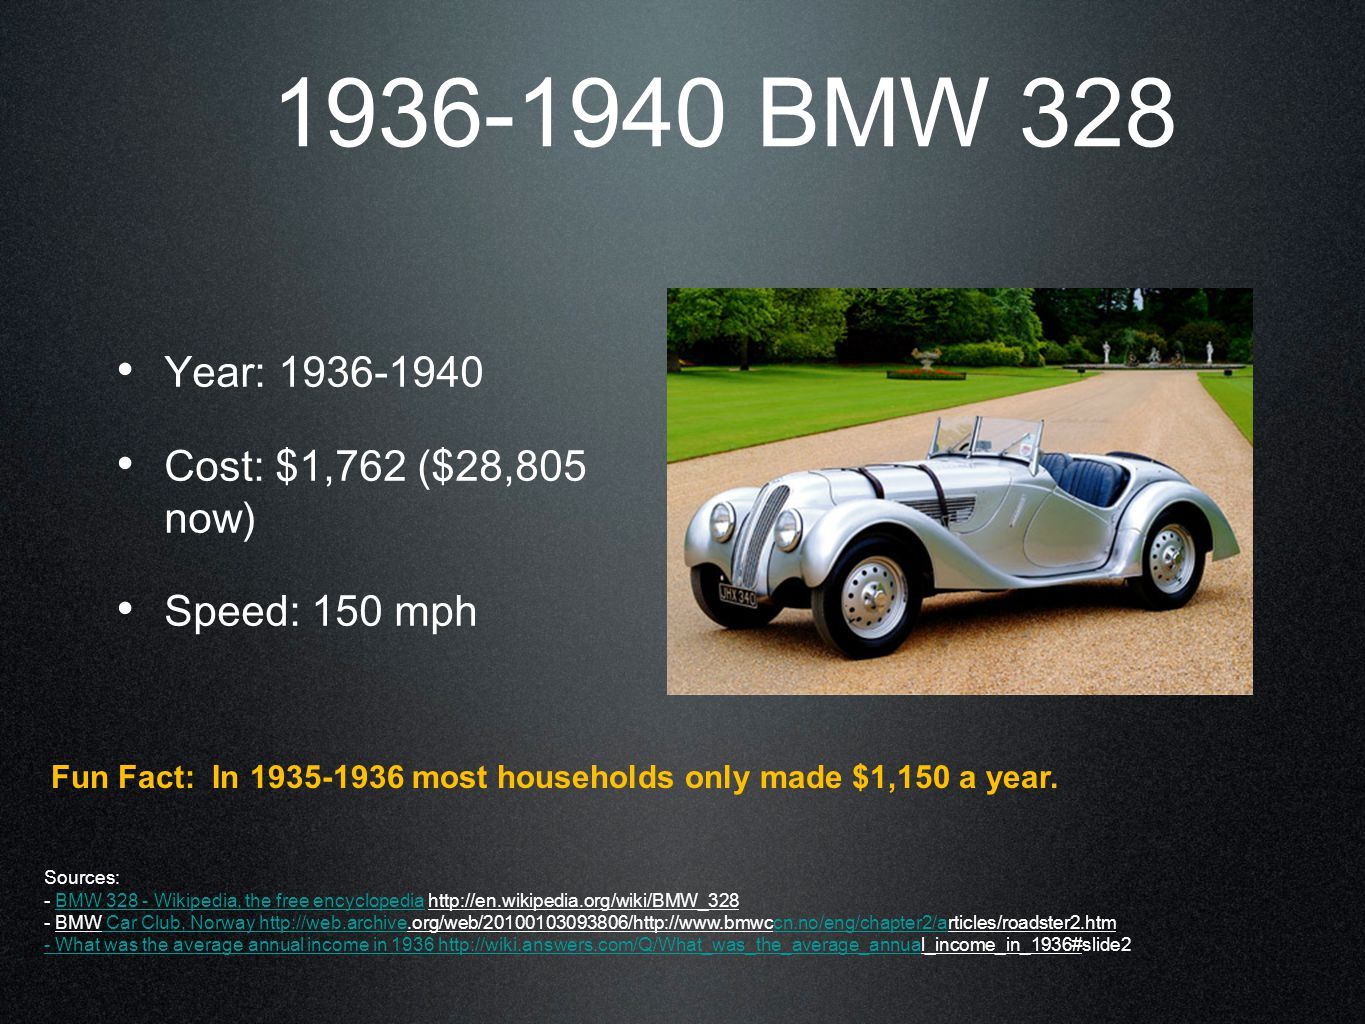 1936-1940 BMW 328 Year: 1936-1940 Cost: $1,762 ($28,805 now) Speed: 150 mph Fun Fact: In 1935-1936 most households only made $1,150 a year.